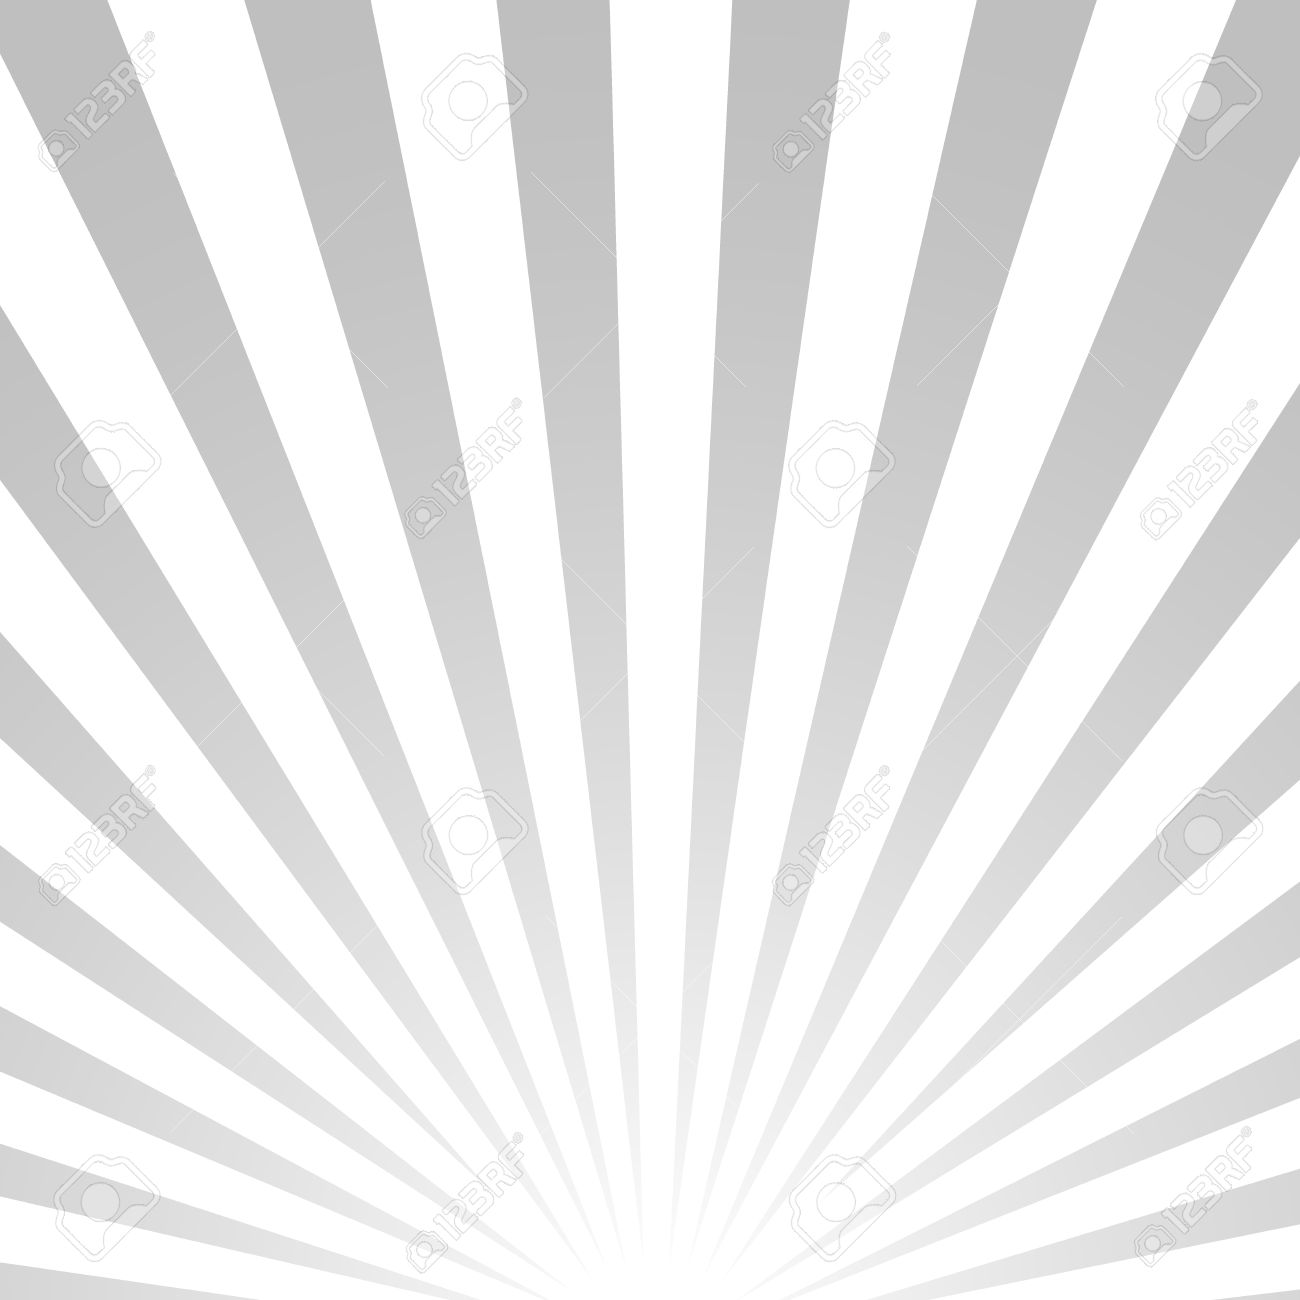 Gray and White Stripes Clip Art.